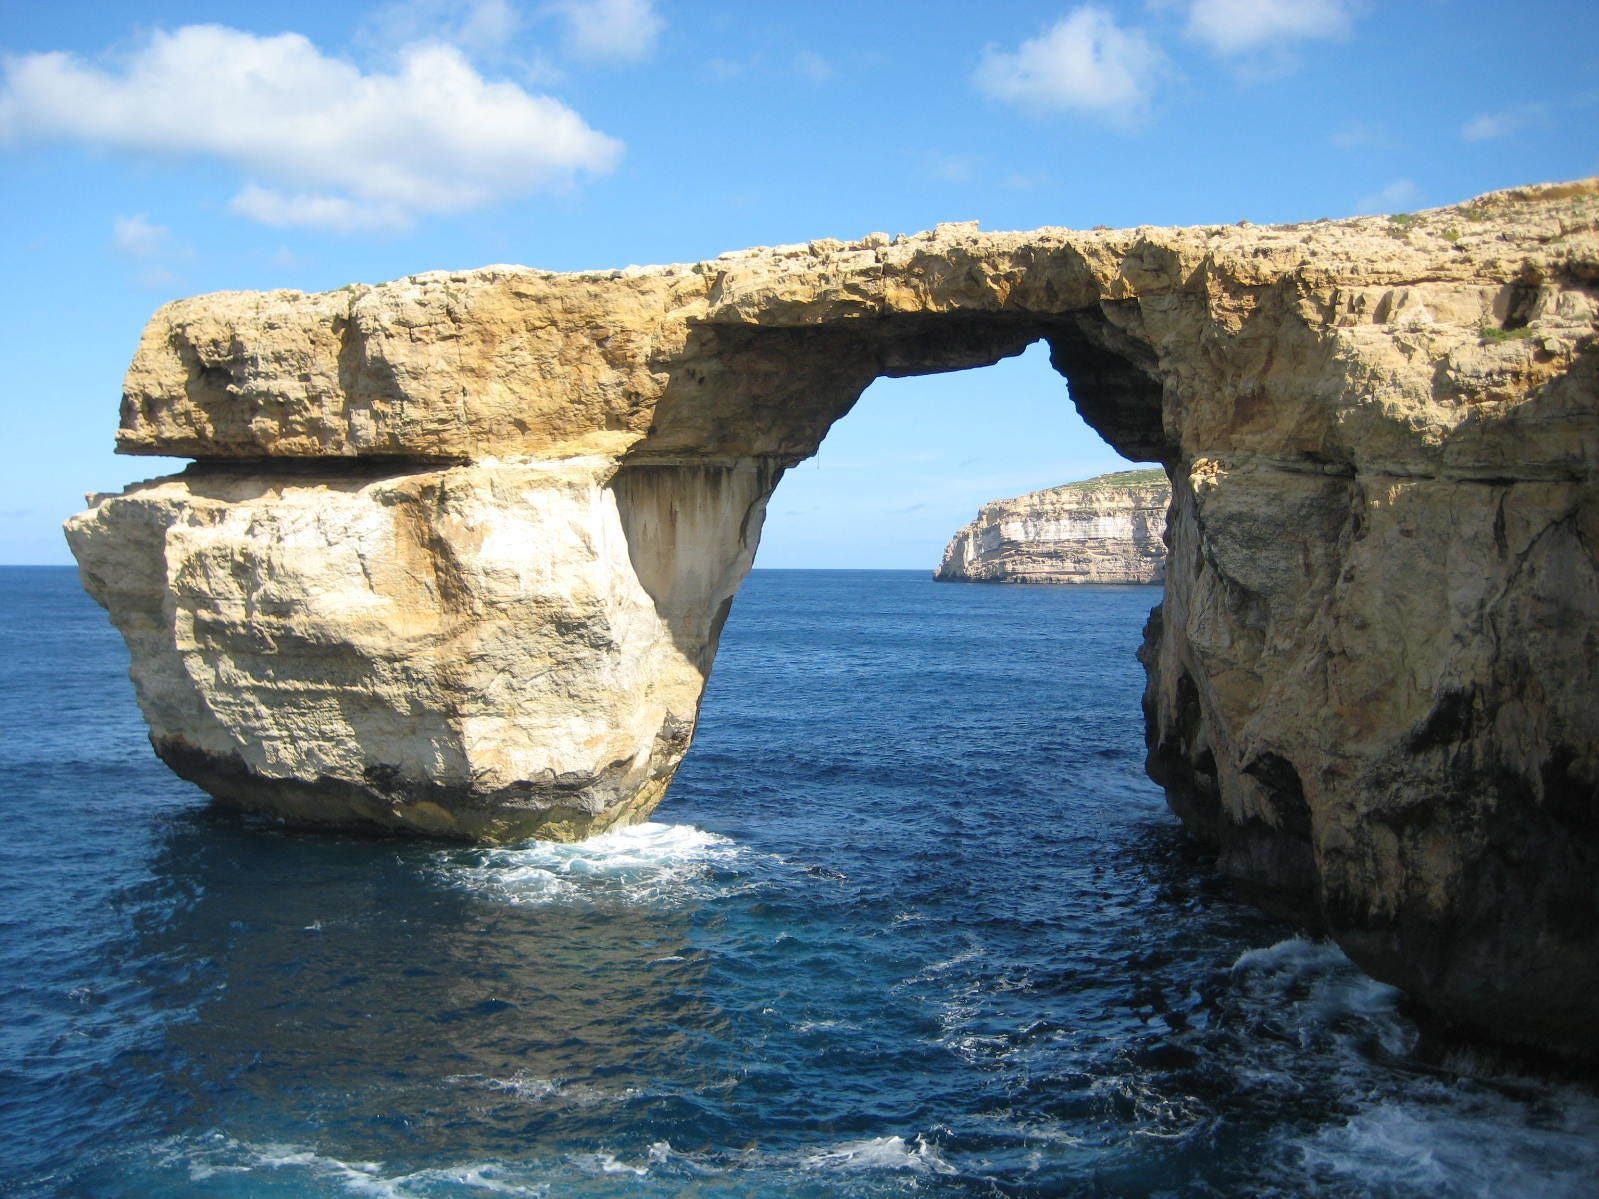 """This is a April 2014 image of the landmark the Azure Window located just off Malta.  The natural rock arch jutting off the Maltese island of Gozo, has collapsed into the sea during a storm. Malta's prime minister called the loss on Wednesday March 8, 2017, of the iconic limestone formation """"heartbreaking."""" No one was injured by the fallen arch, which was also a TV and film backdrop.(Caroline Hodgson via AP) ORG XMIT: LON830"""